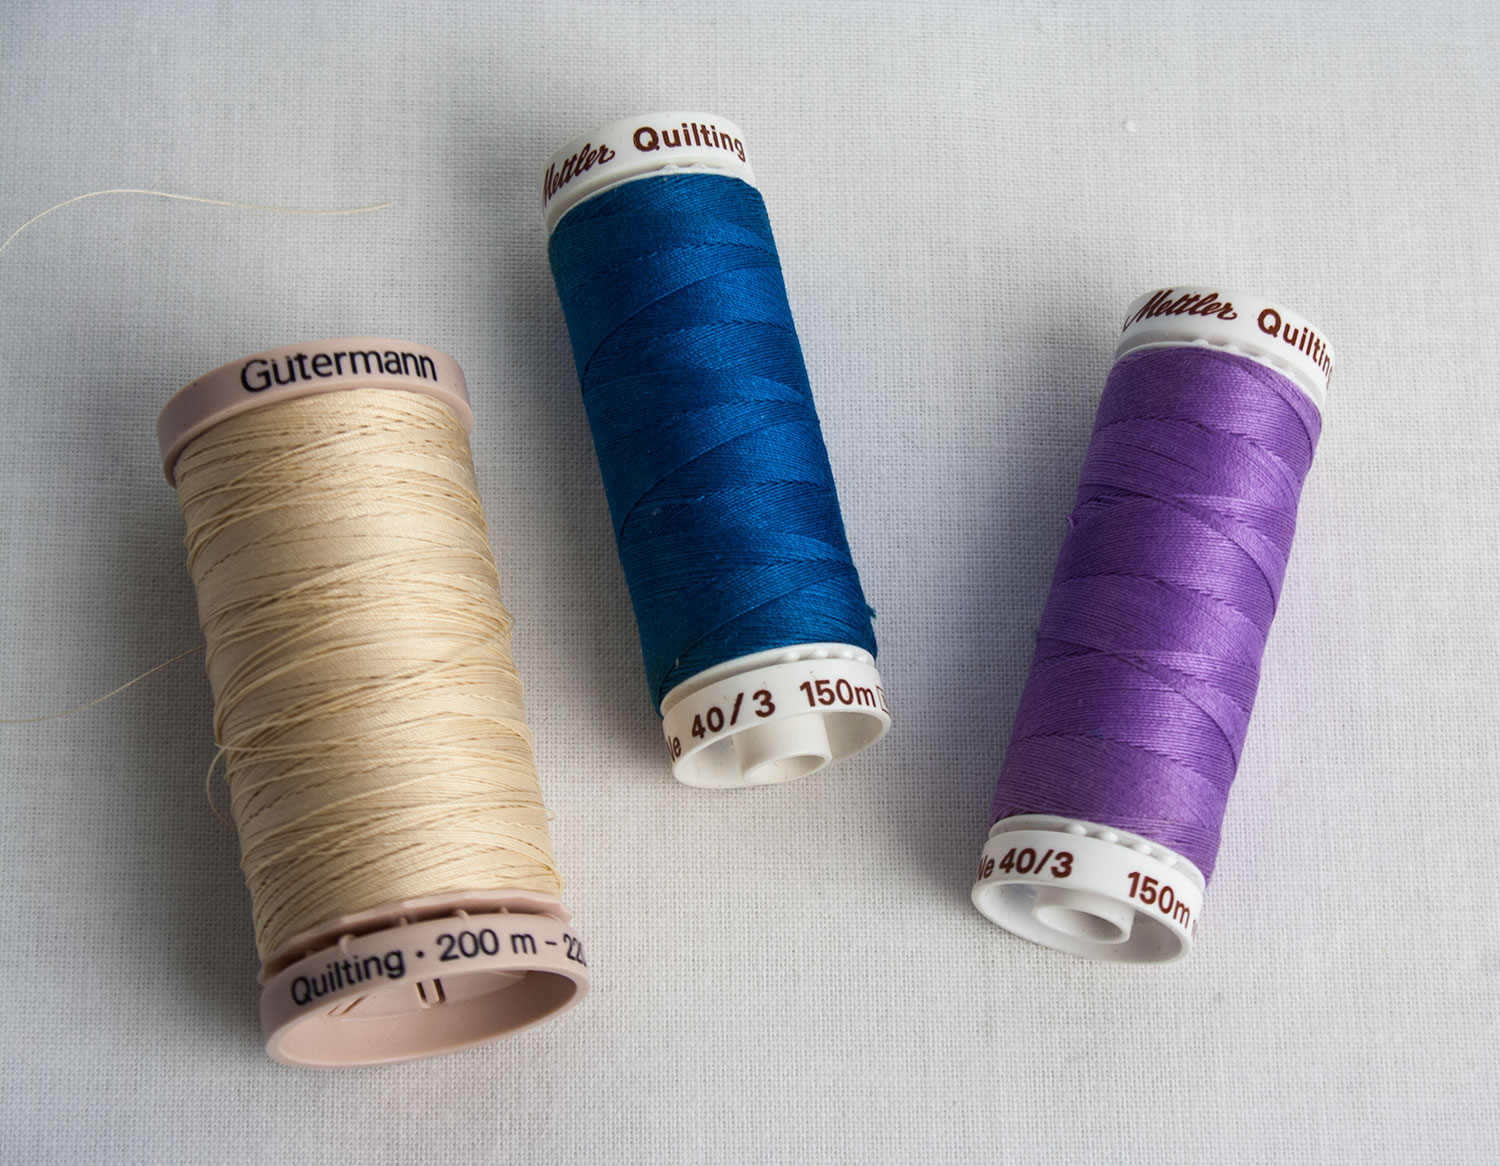 HAND-QUILTING THREADS